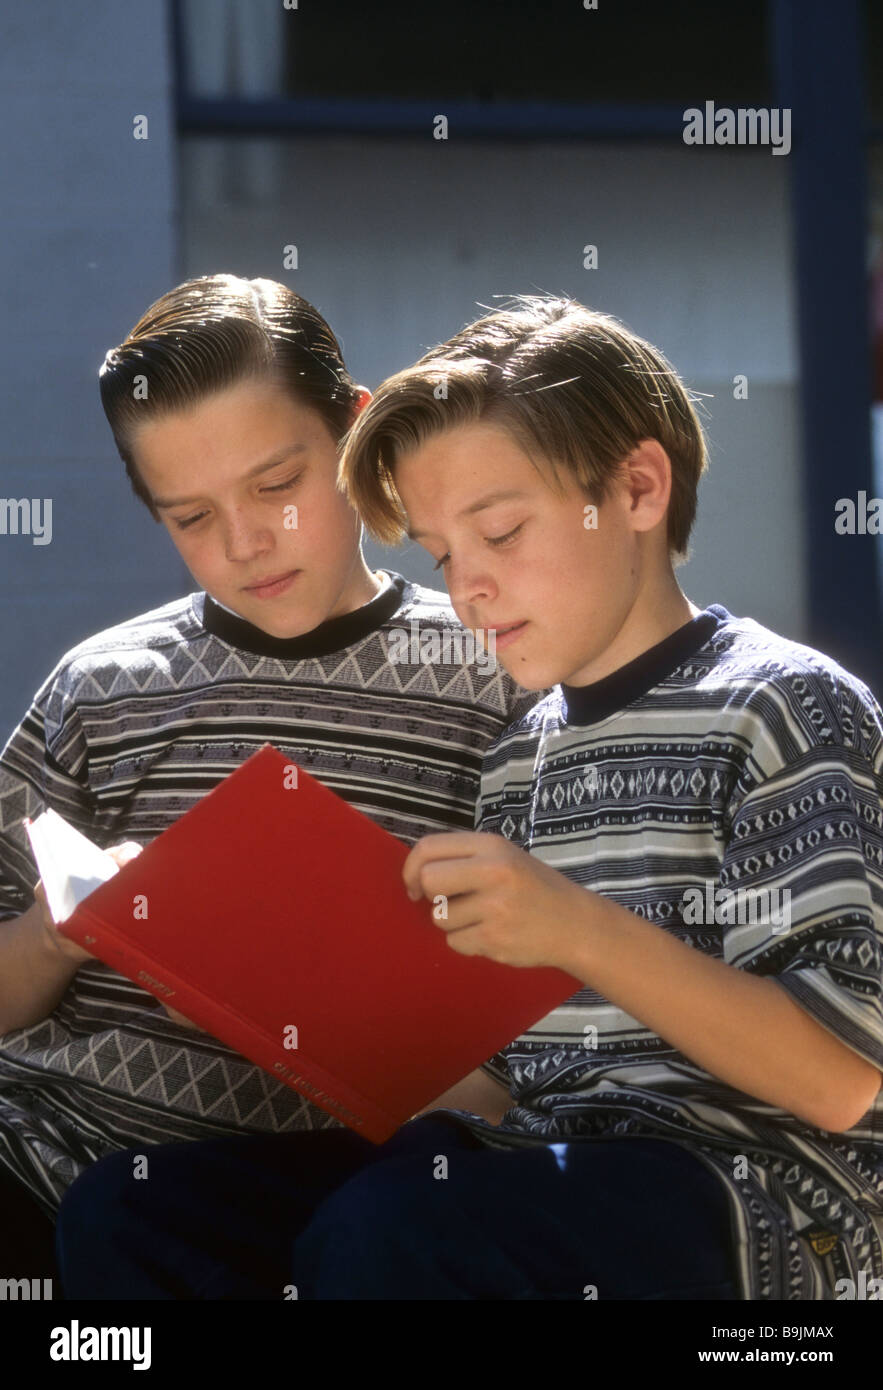 Twin boy brother read book share look alike same age compare see sun outdoor outside intent interest attention - Stock Image